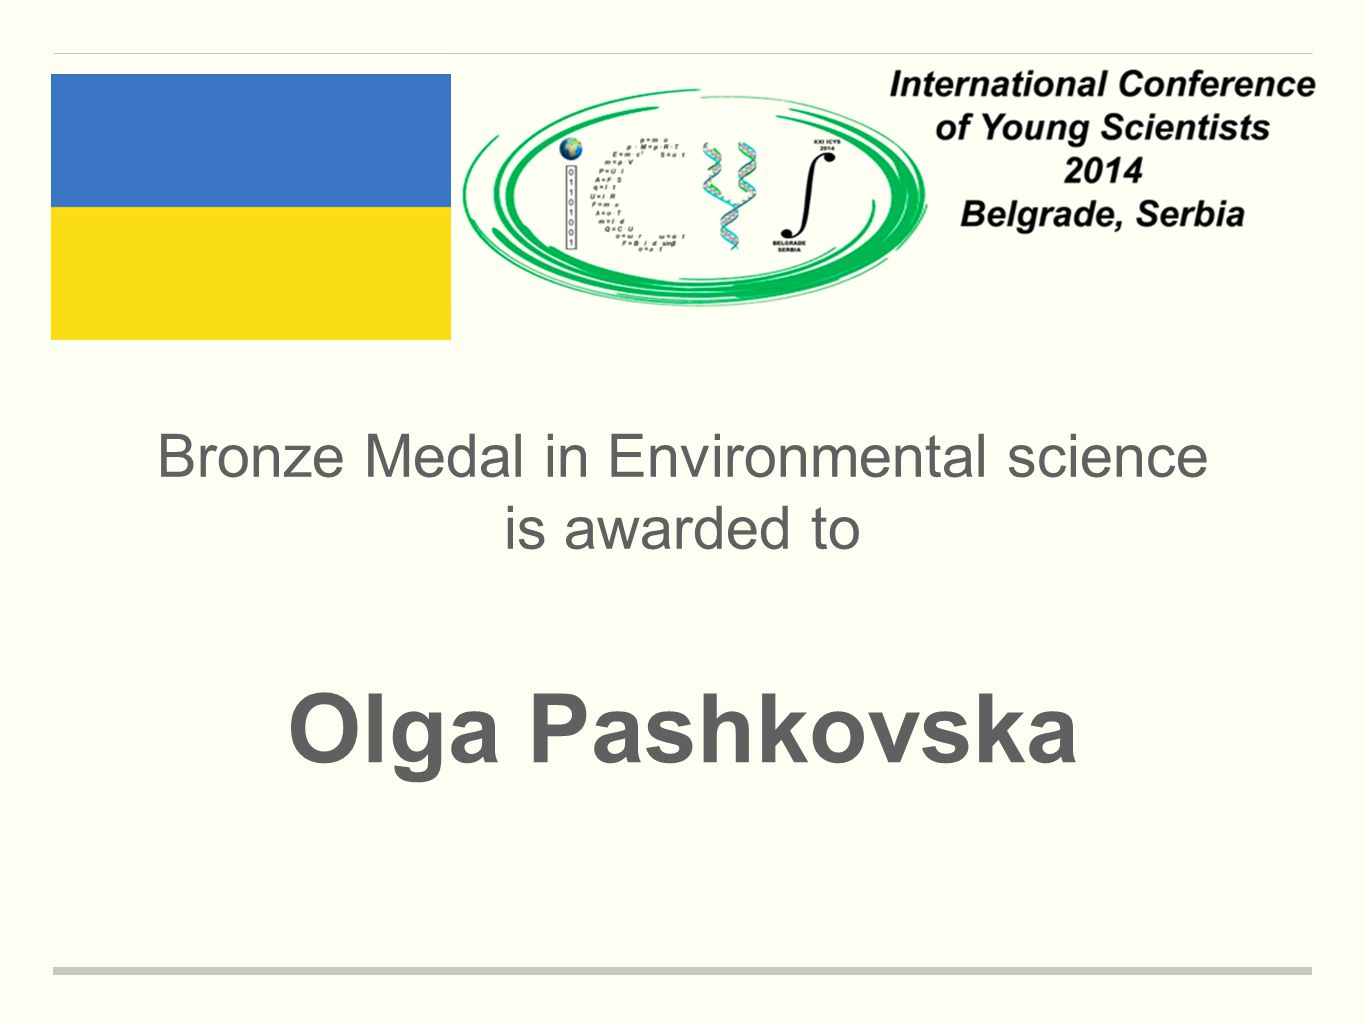 Bronze Medal in Environmental science is awarded to Olga Pashkovska